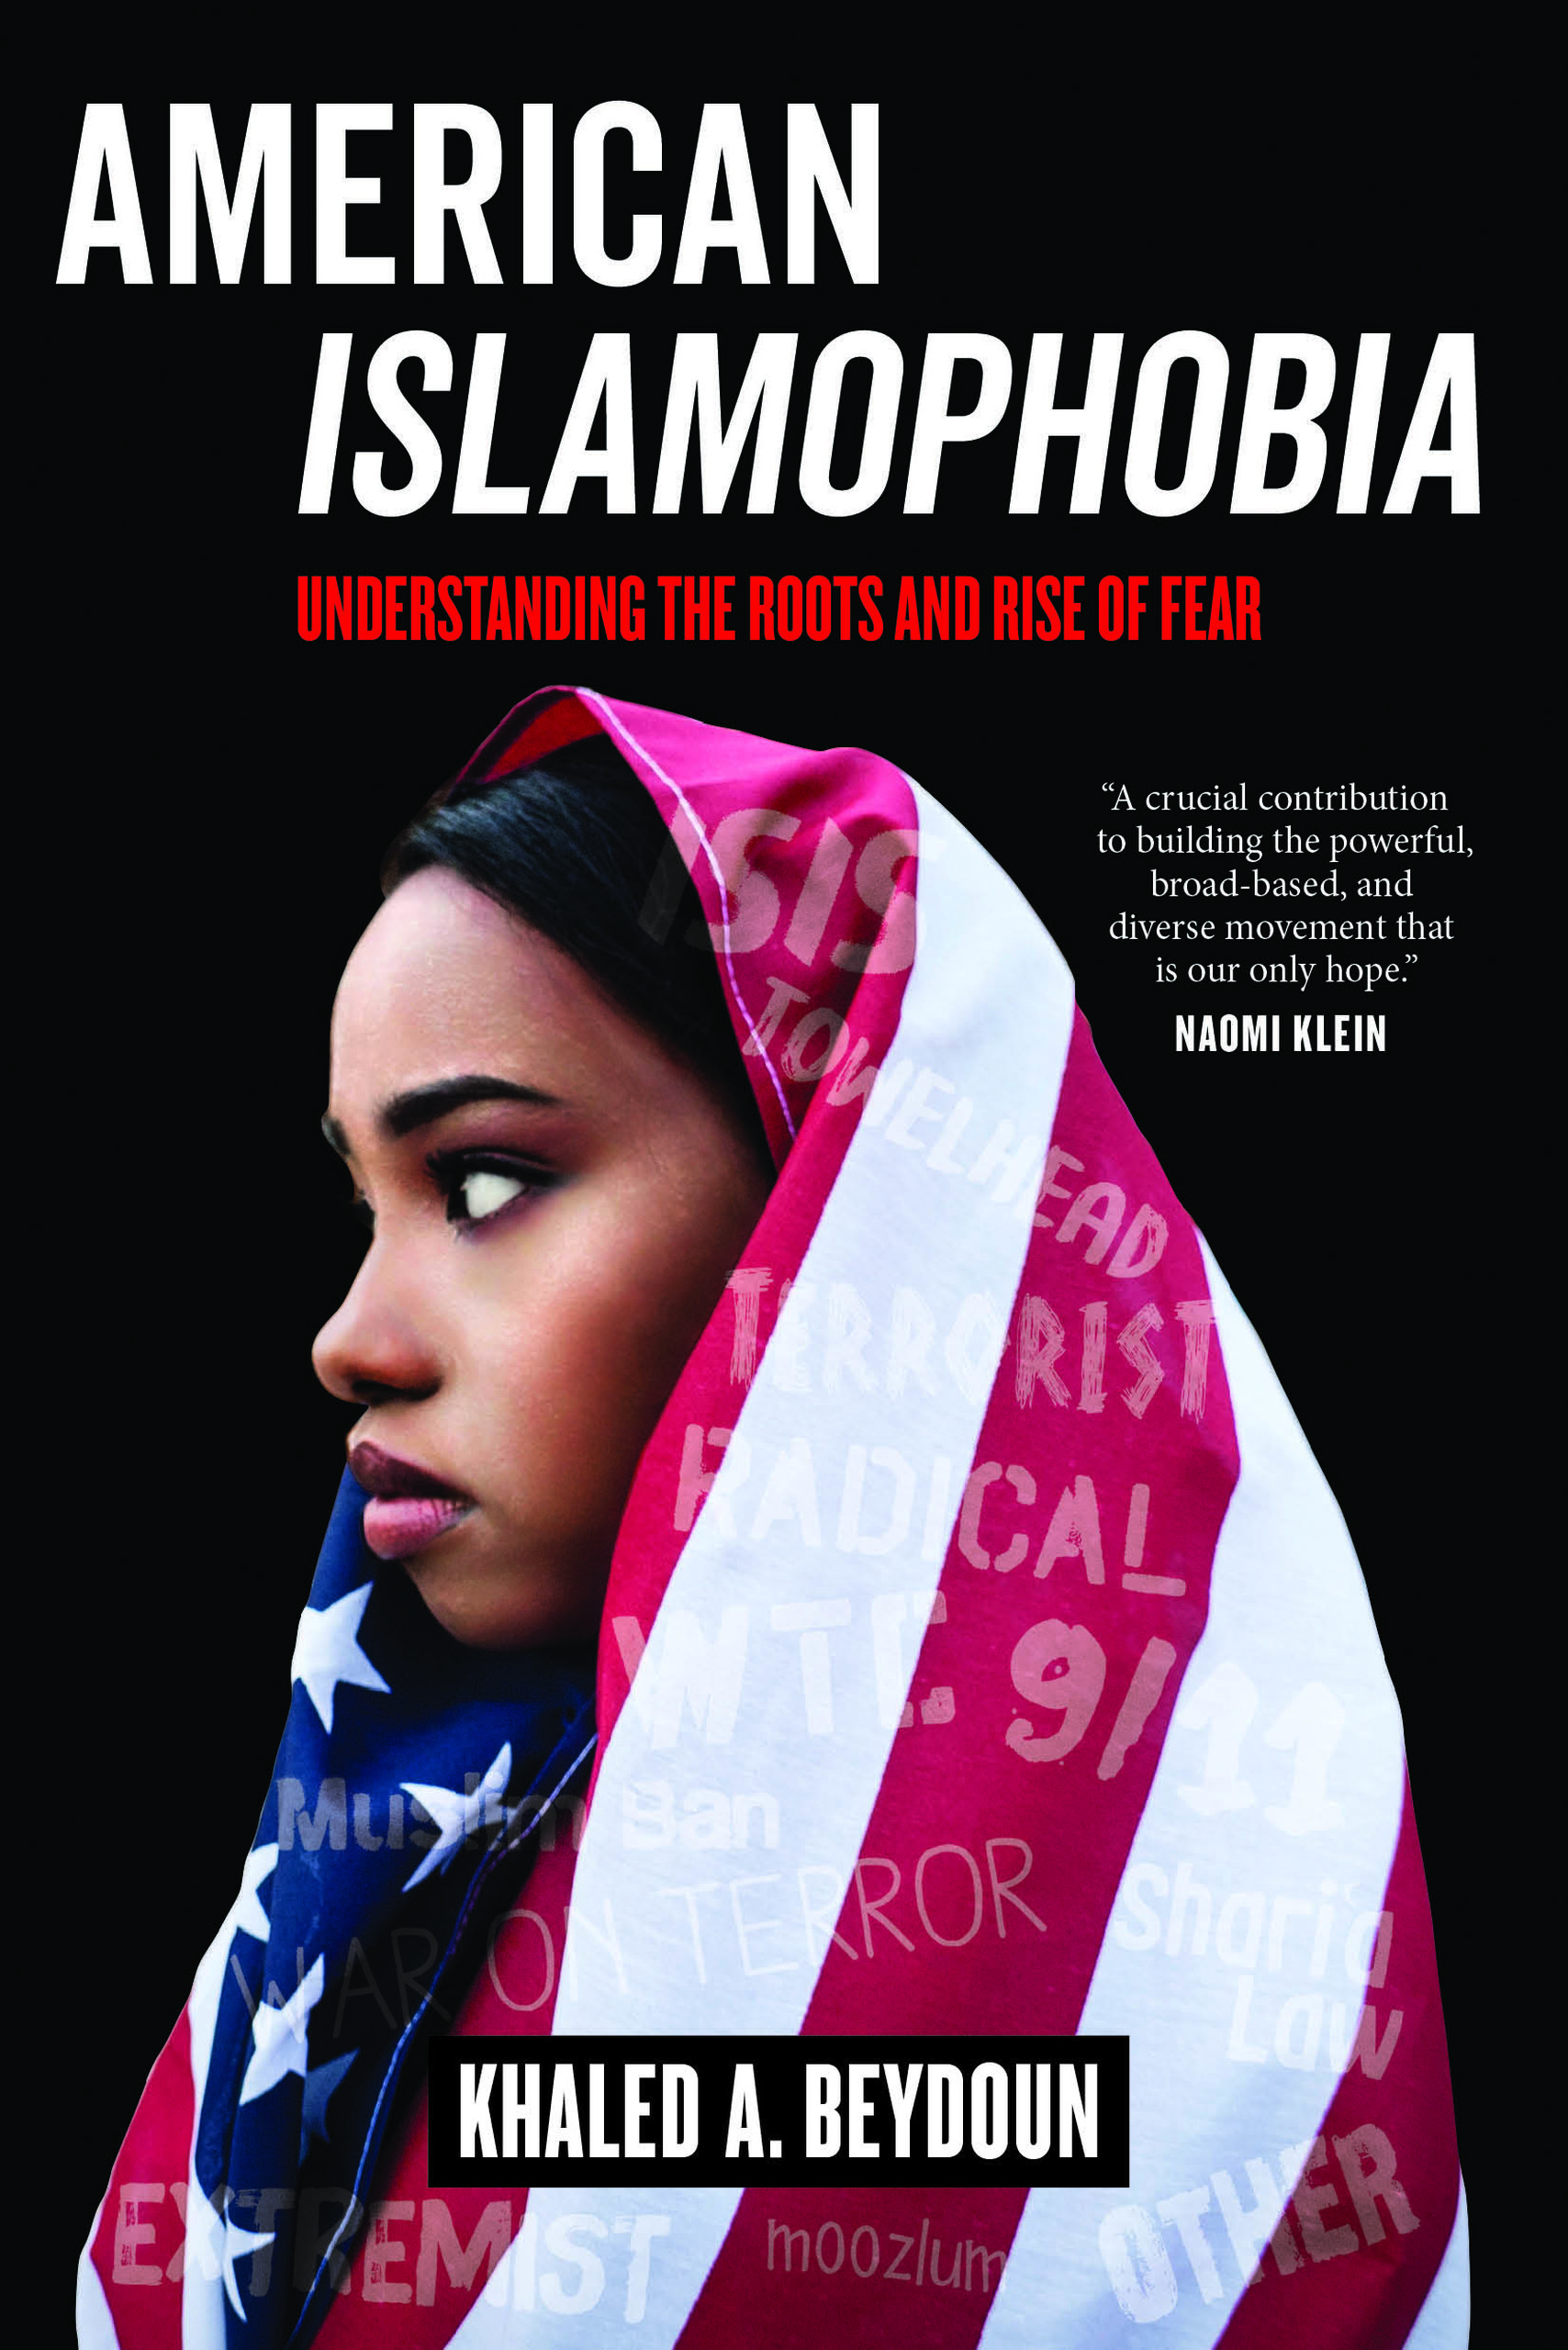 American Islamophobia [electronic resource] : understanding the roots and rise of fear / Khaled A. Beydoun